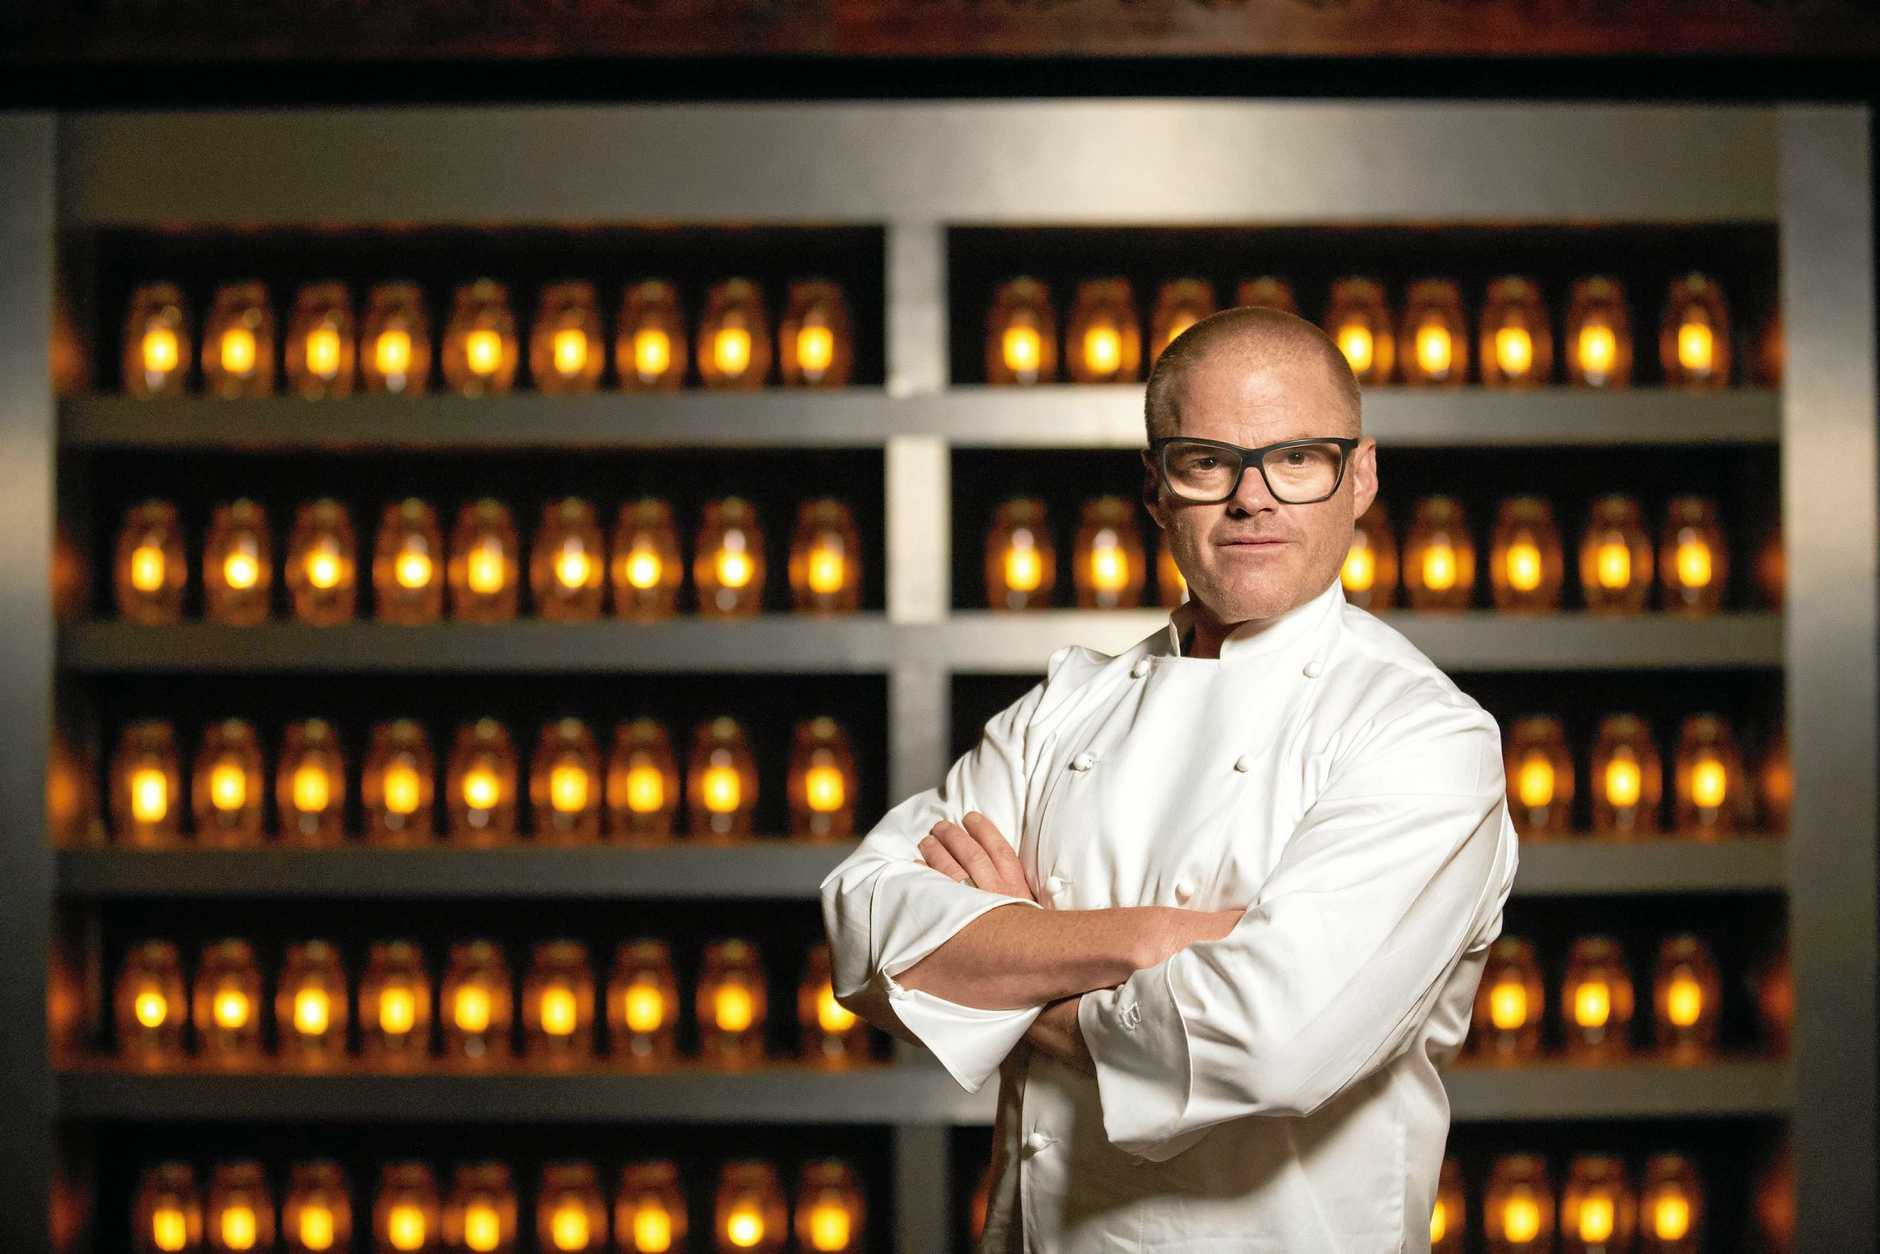 Chef Heston Blumenthal will set this year's grand final challenge on MasterChef.